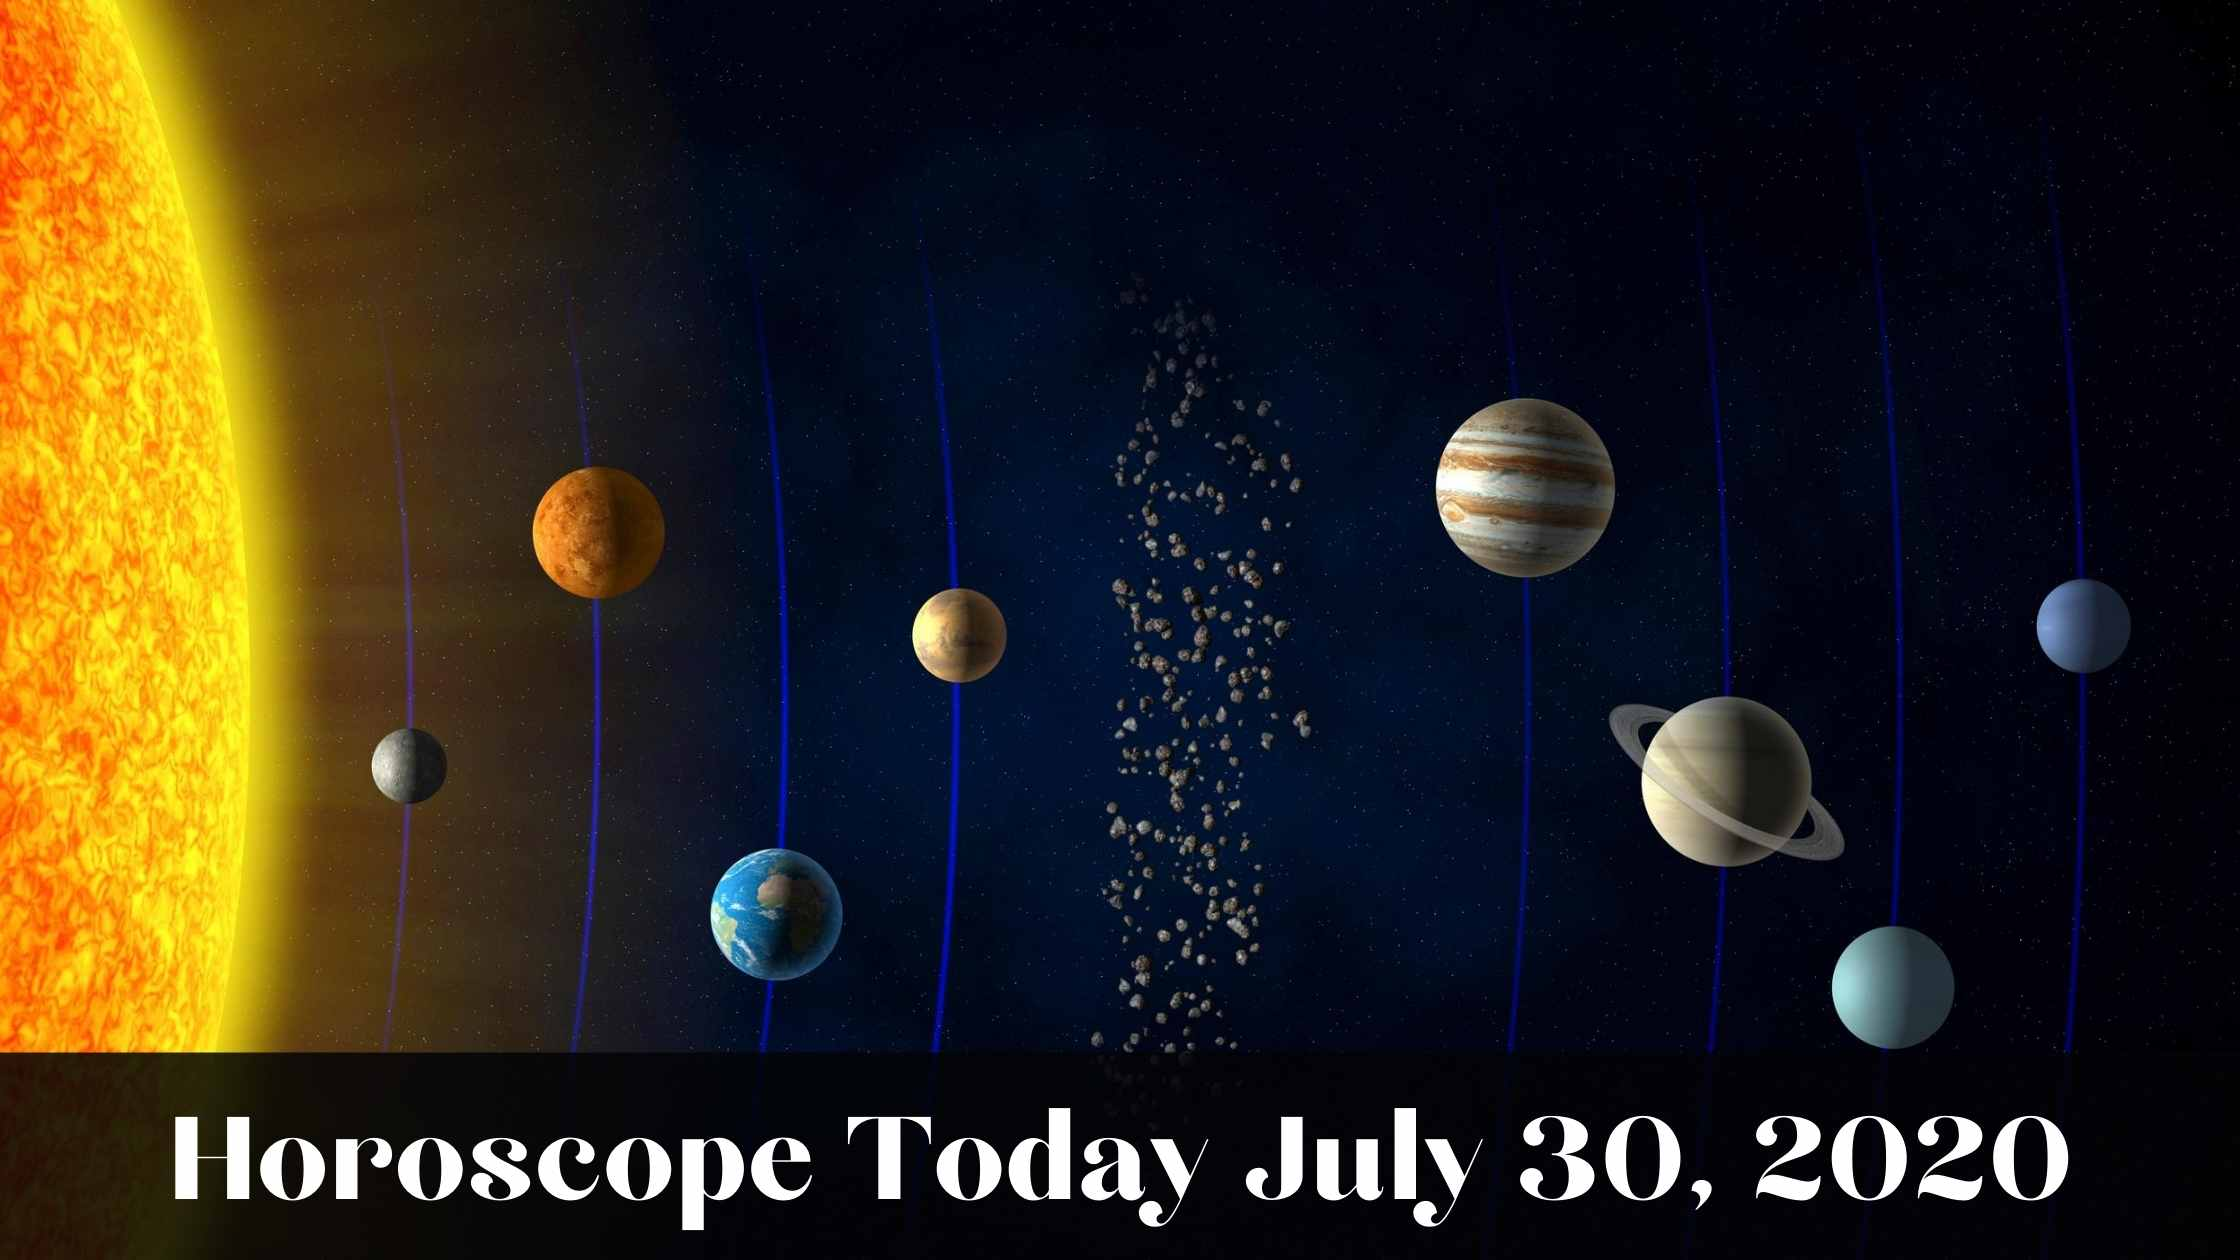 Daily Horoscope Today For July 30, 2020 (Thursday)